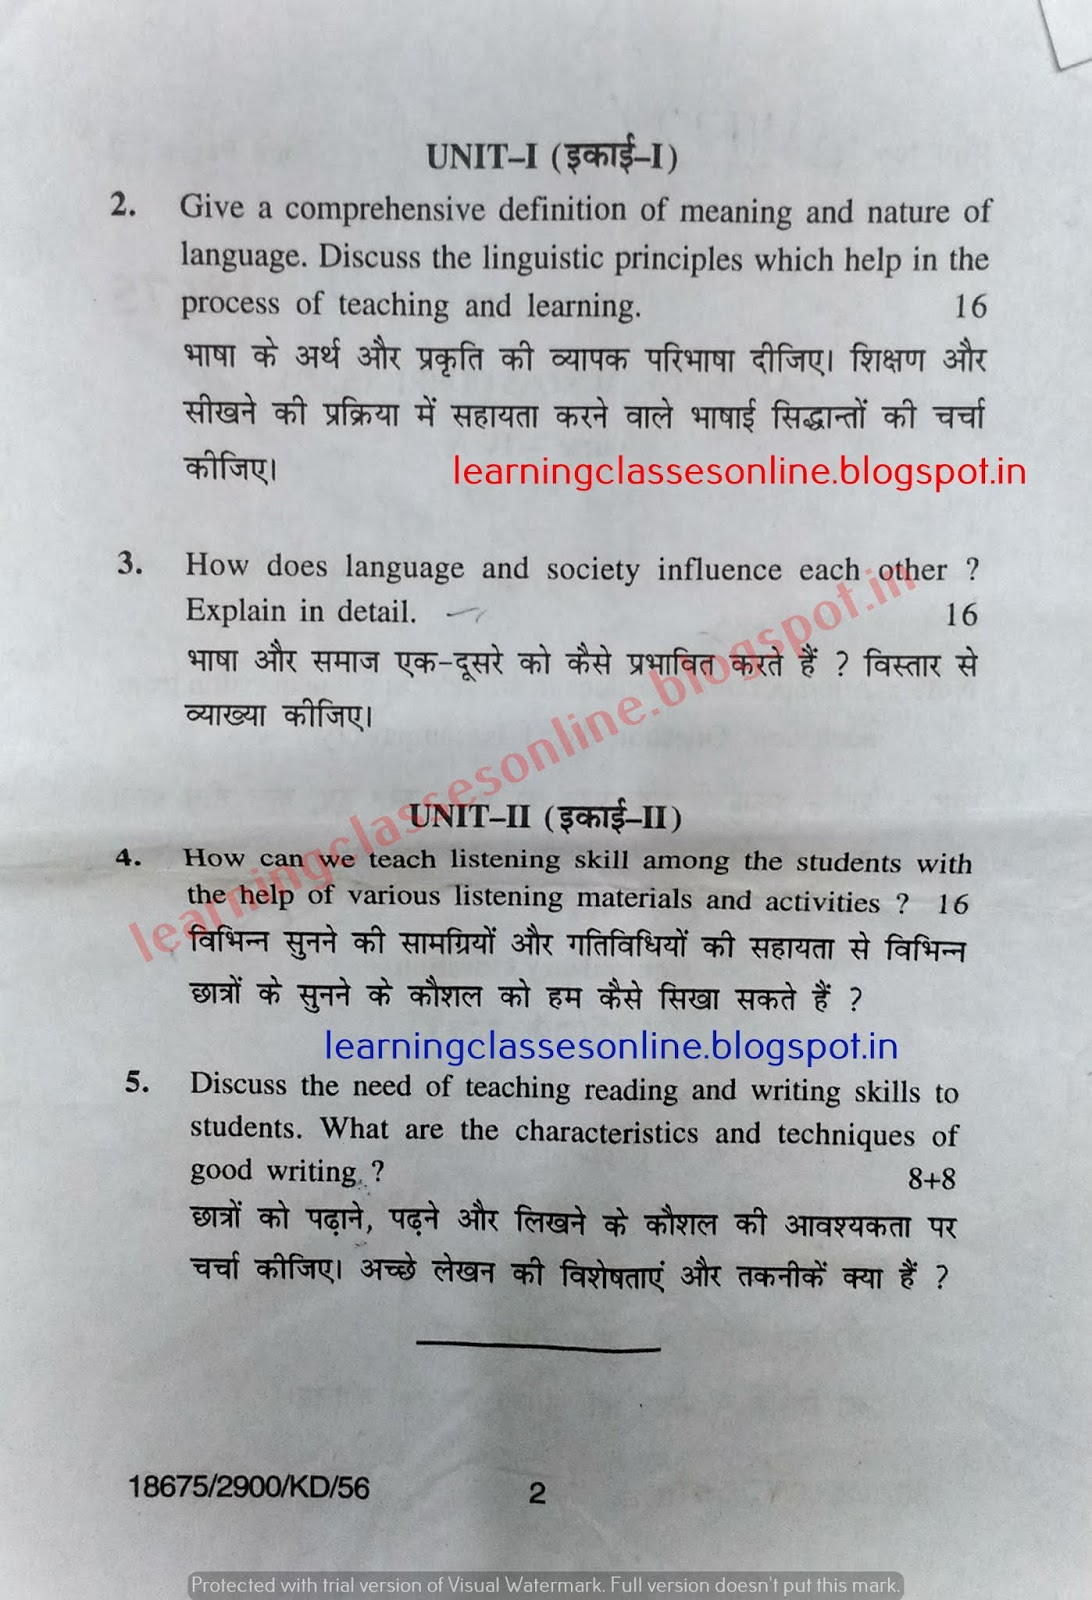 anguage across curriculum 2017 Question Paper